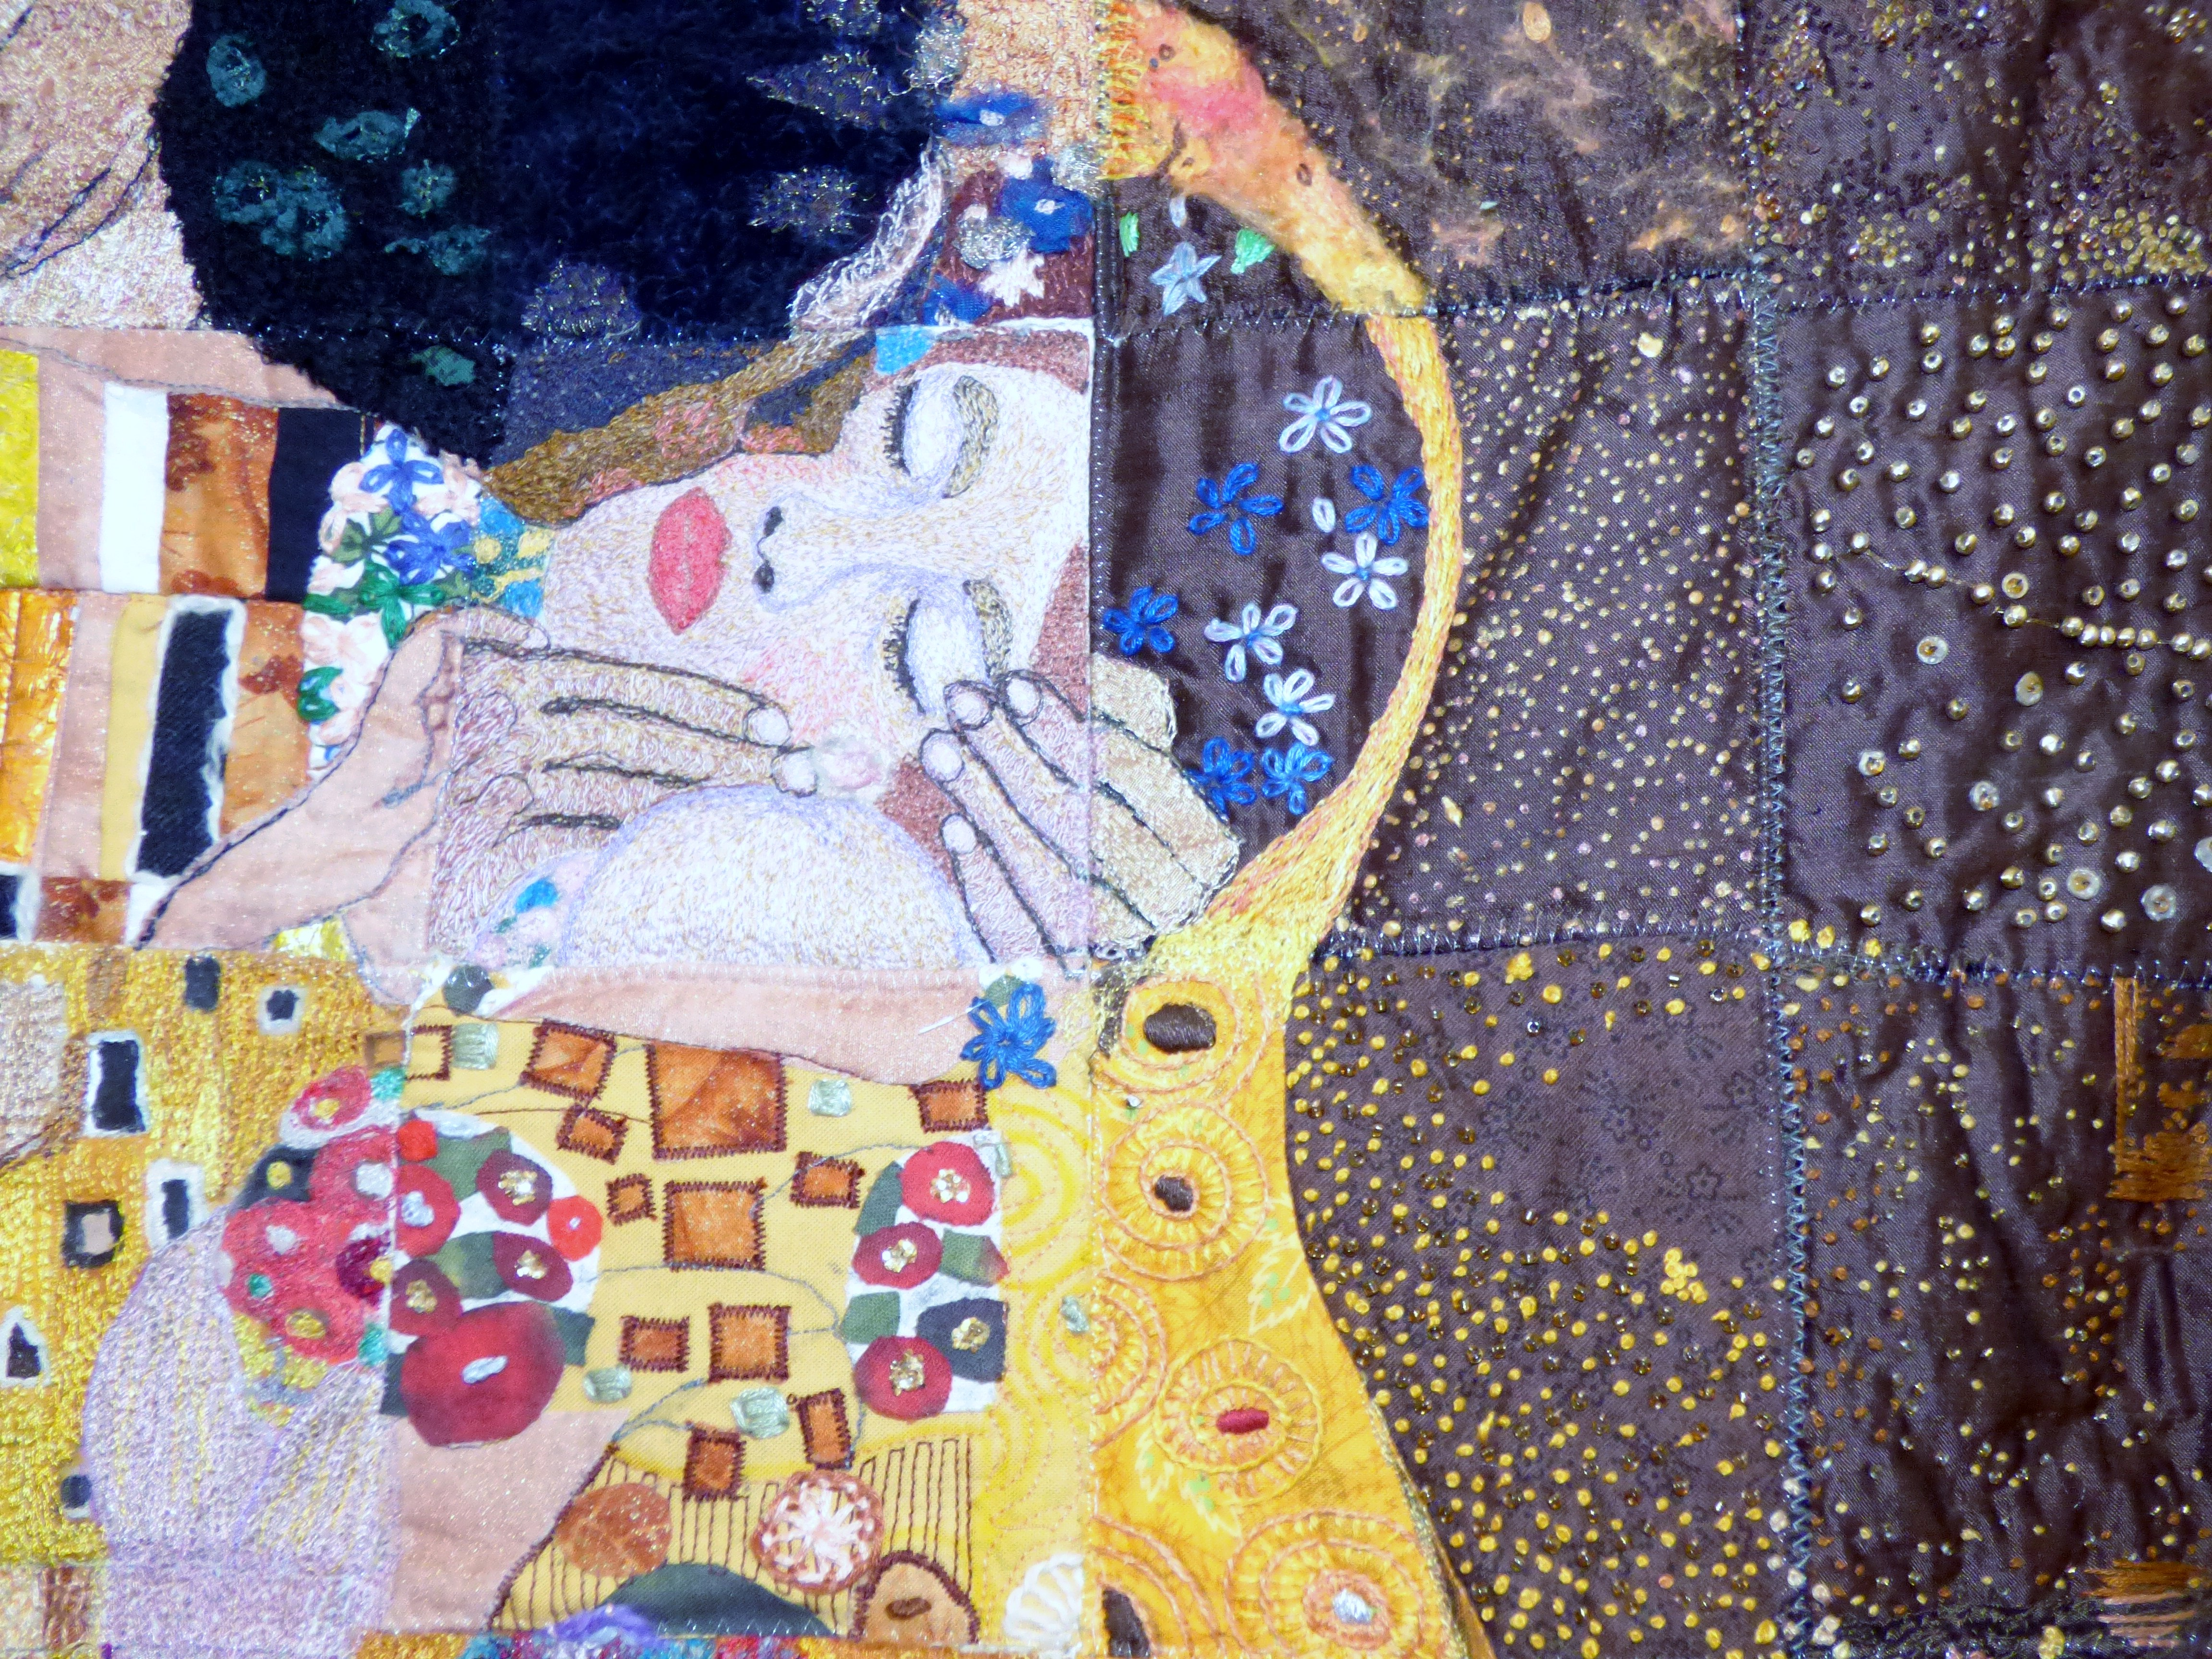 """(detail) """"THE EMBRACE"""" BASED ON KLIMPT'S """"THE KISS"""" Wirral EG group work, poster divided up and recreated in stitch"""